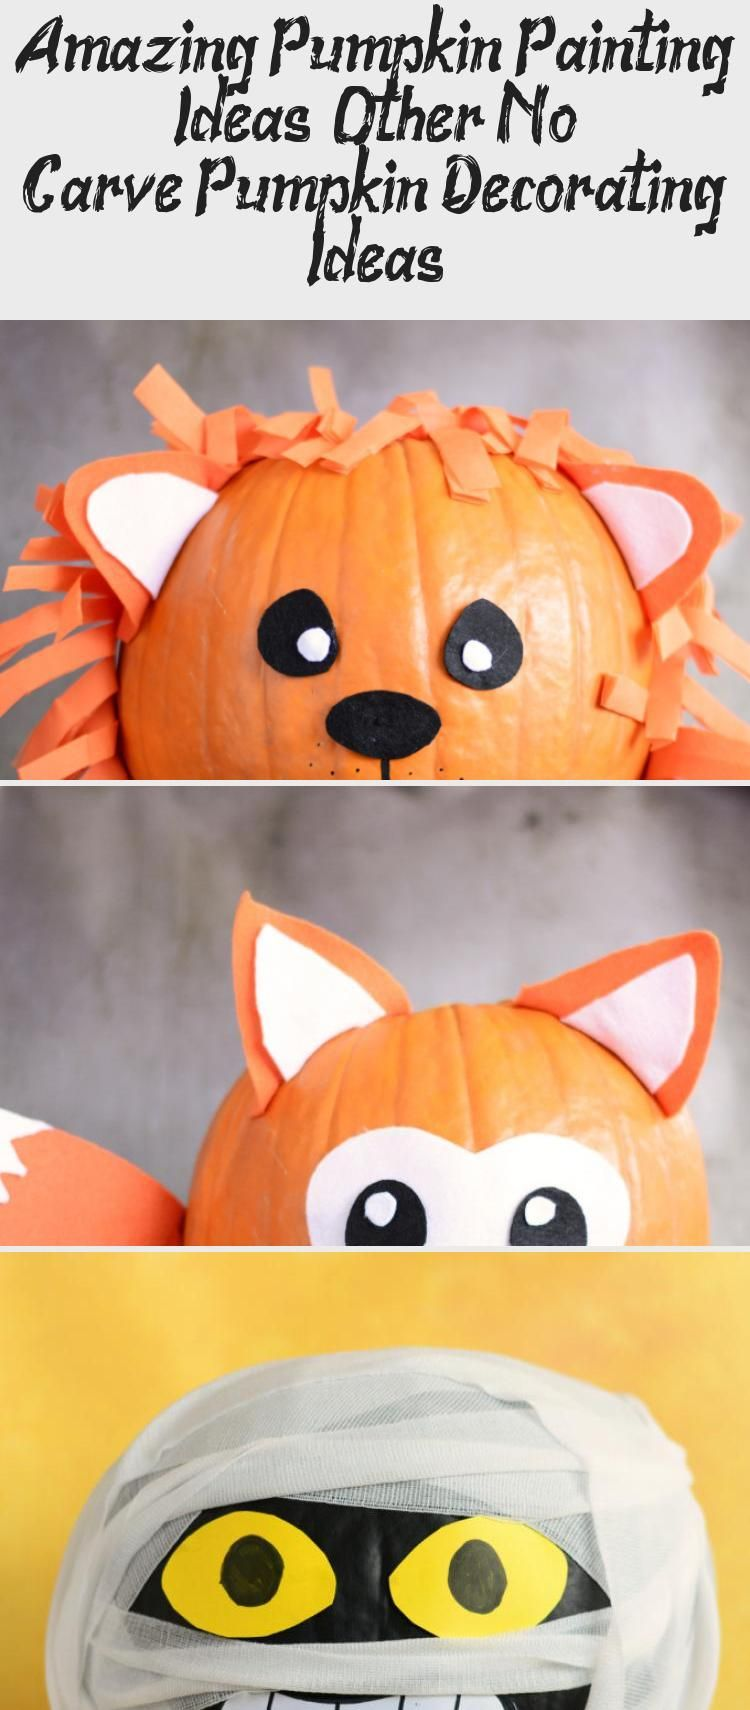 Amazing Pumpkin Painting Ideas & Other No Carve Pumpkin Decorating Ideas #Glasspaintingideas #paintingideasArt #paintingideasSky #paintingideasPencil #Trippypaintingideas #pumpkinpaintingideas